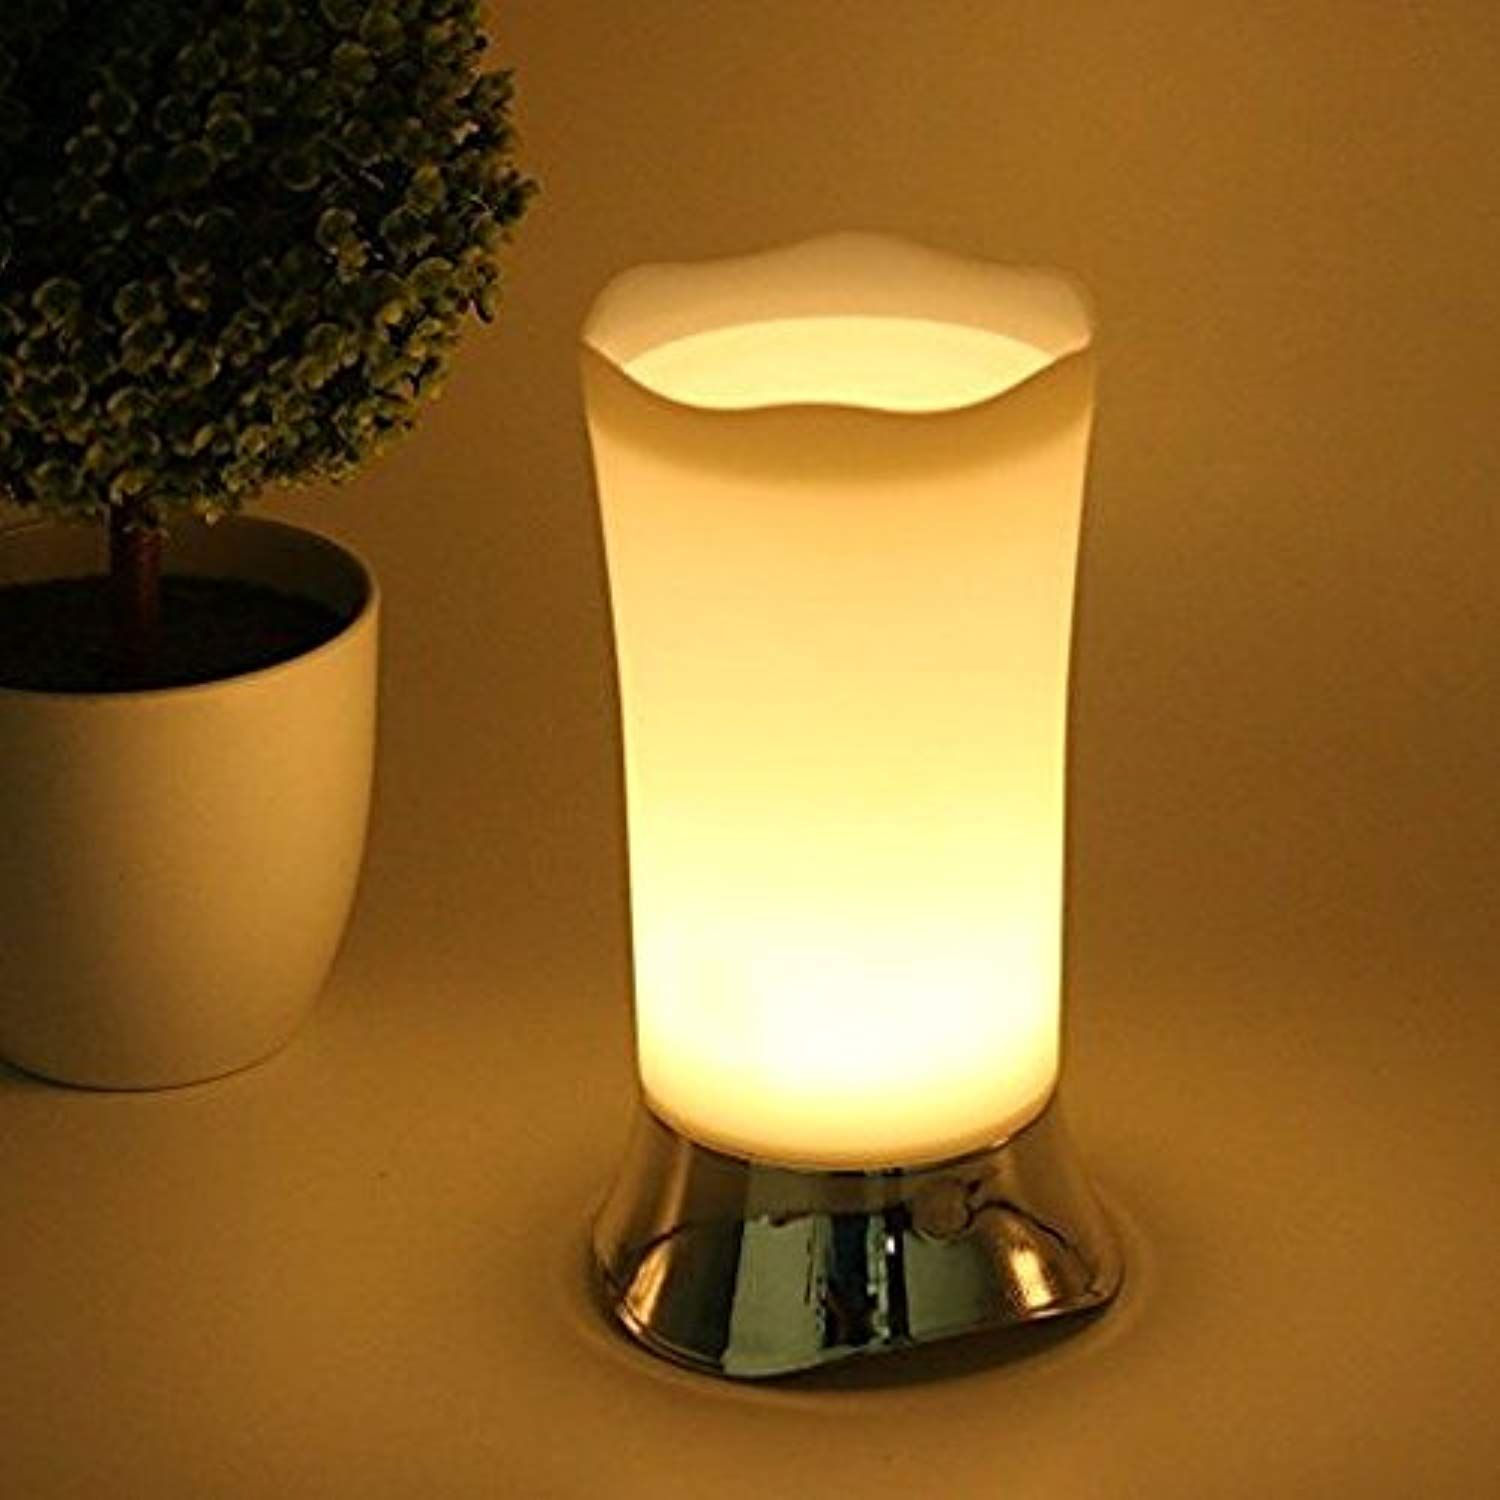 Deeplite Battery Operated Table Lamp With Motion Sensor Cordless Led Mini Night Lights For Battery Operated Lamps Battery Operated Table Lamps Led Night Lamp